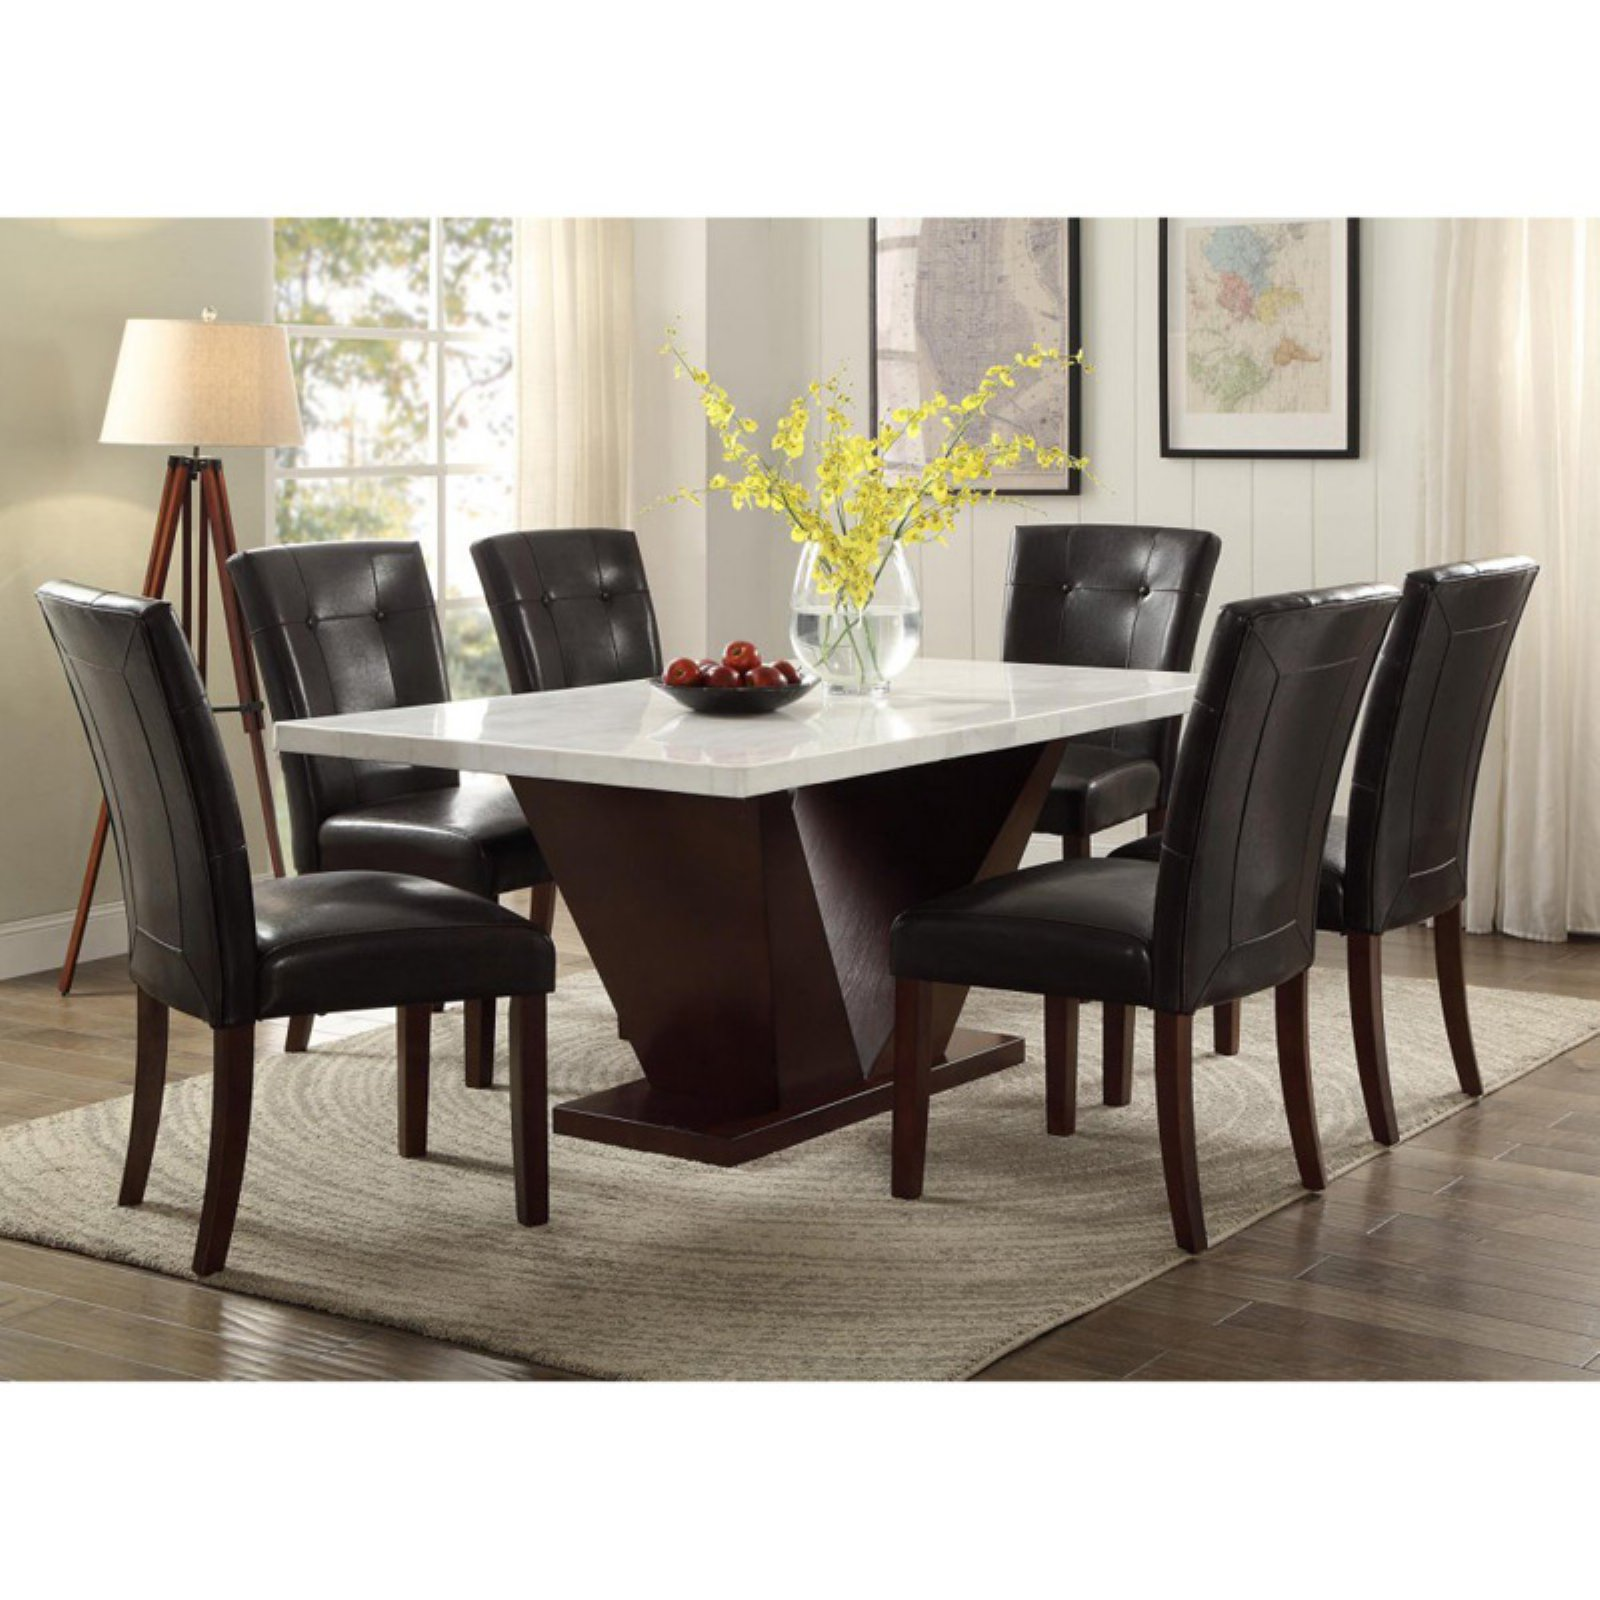 Acme Furniture Forbes Dining Table